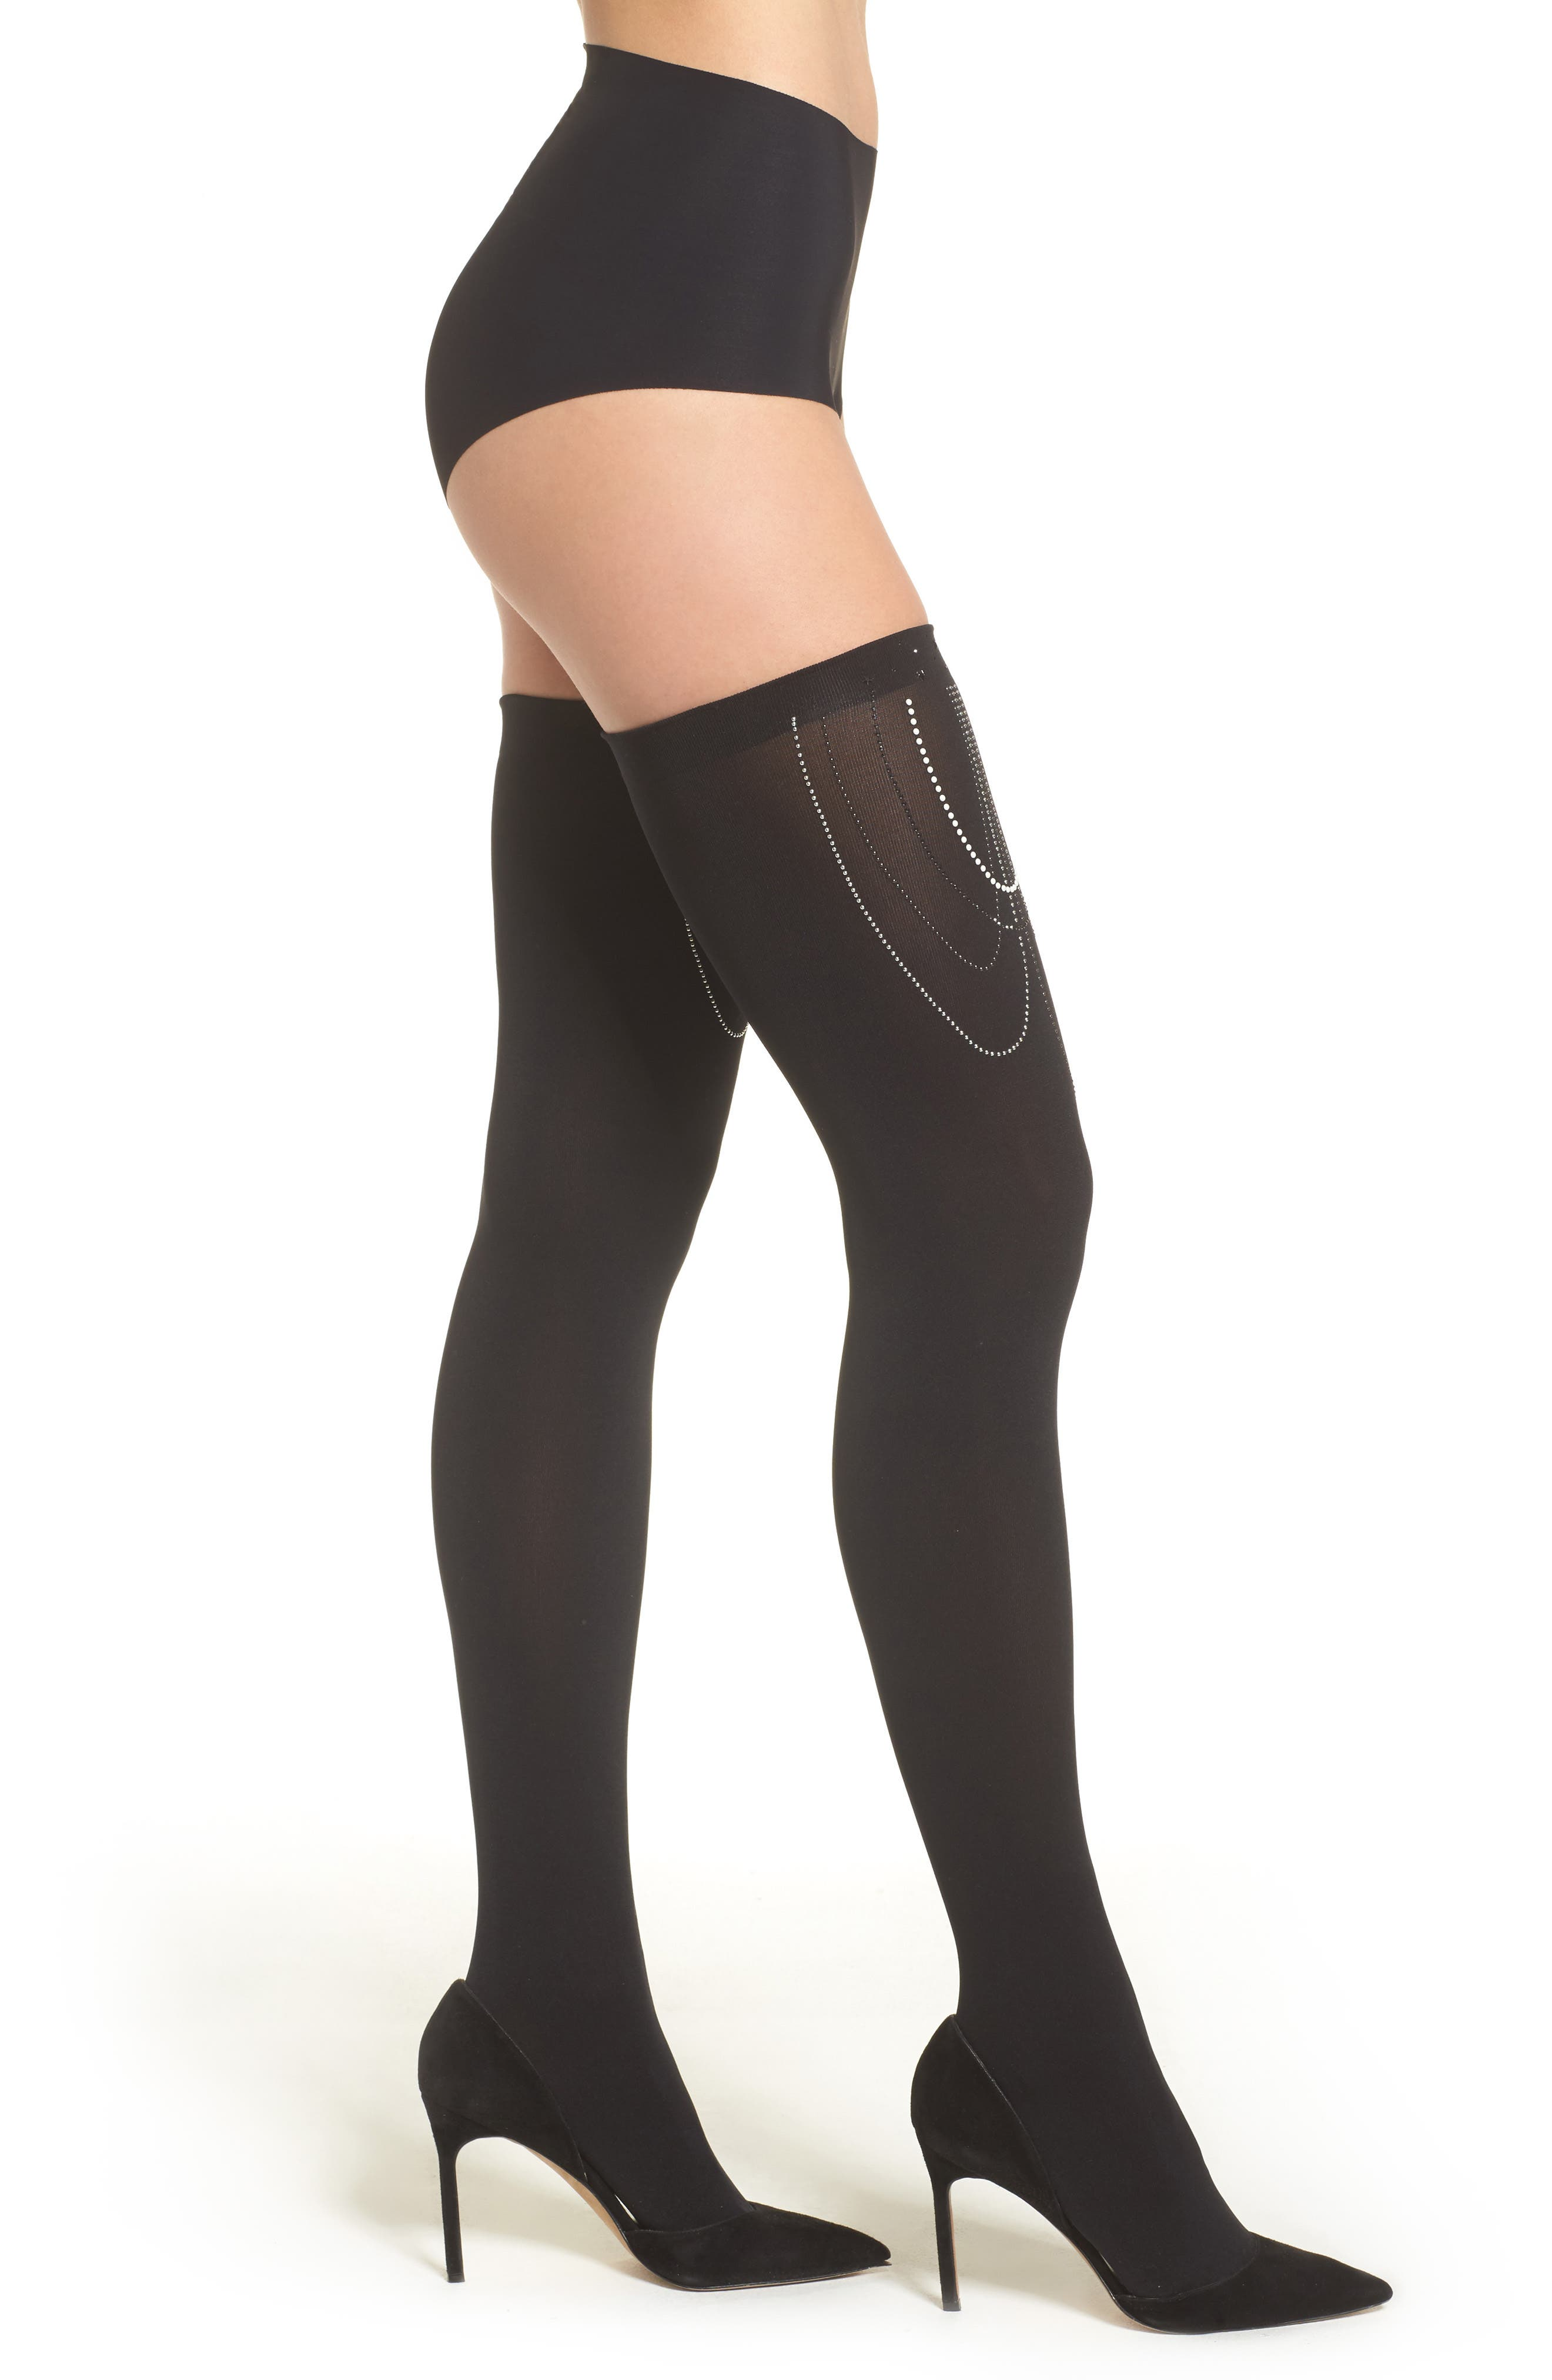 Wolford Embellished Stay-Put Stockings